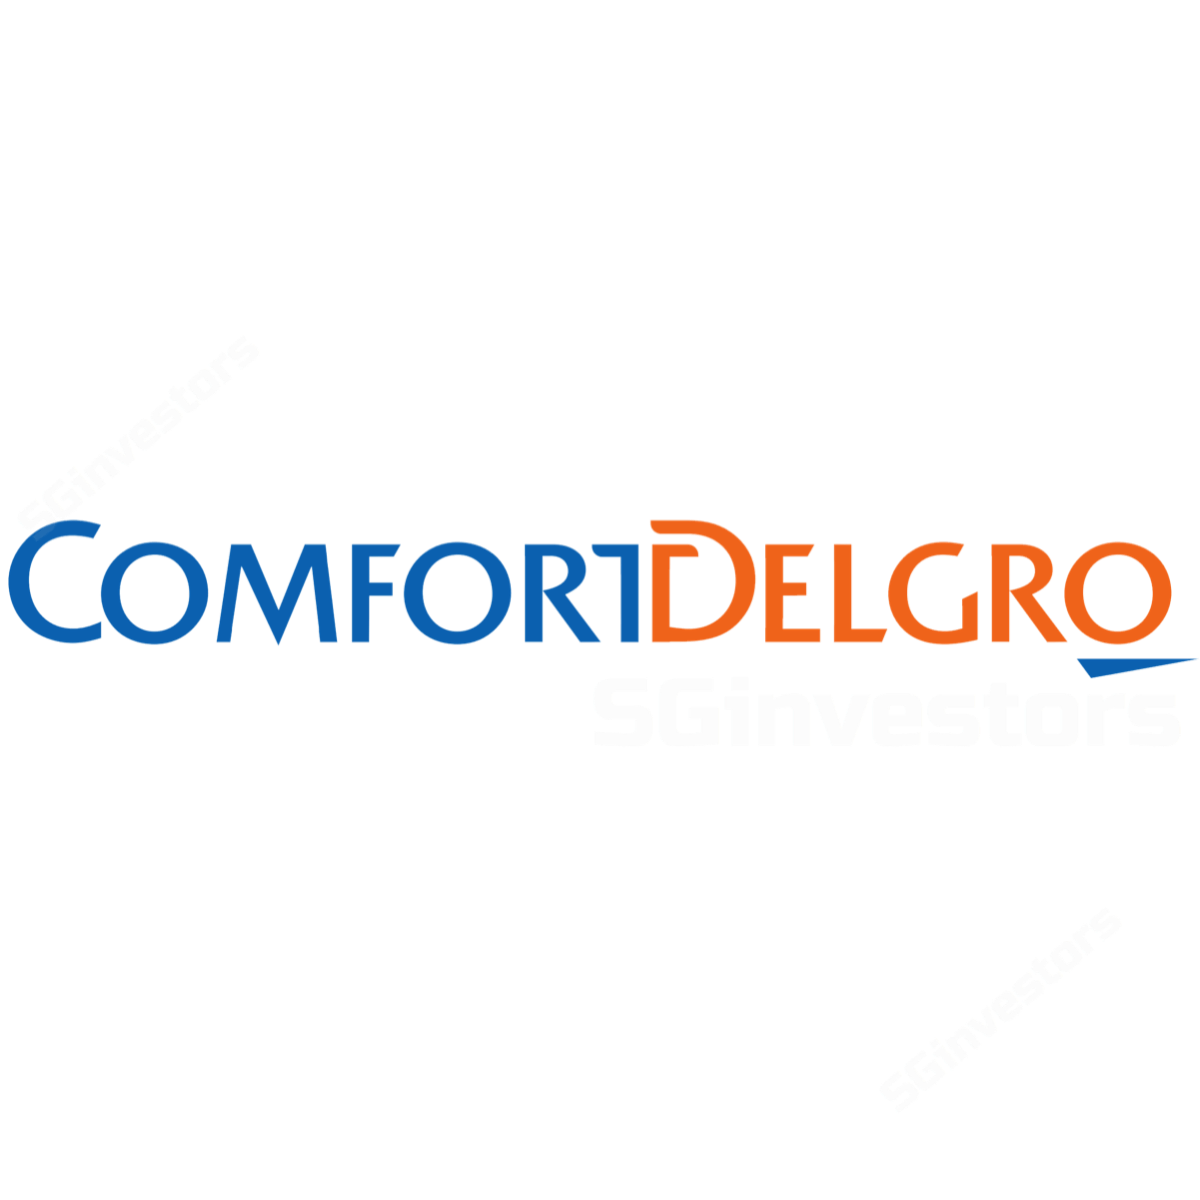 ComfortDelGro (CD SP) - DBS Vickers 2018-02-20: CD-Lion City Rental Acquisition Moves Into Phase 2 Of CCS Review